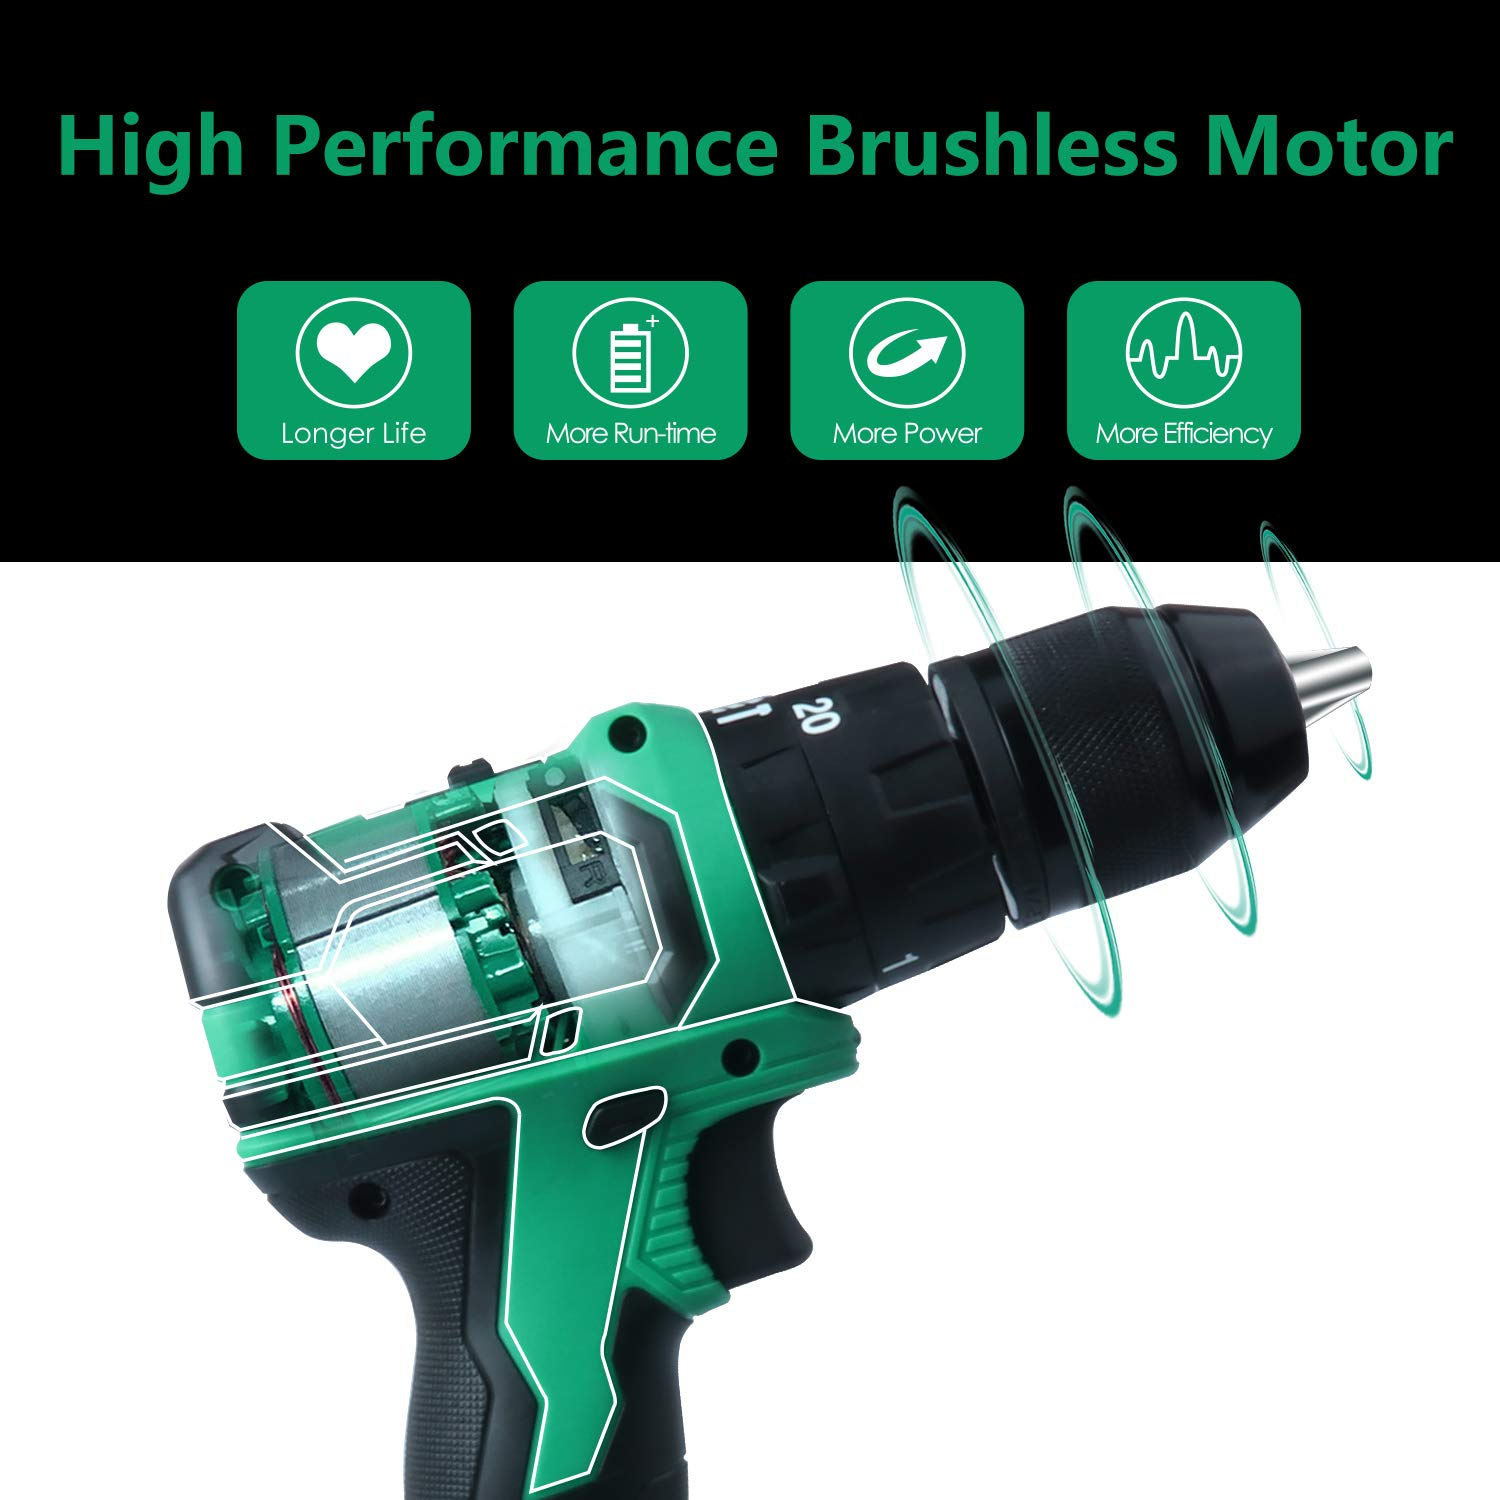 """Enegitech 18V Compact Impact Drill Driver Combo 1//2/"""" Chuck Brushless Motor 20+1 Clutch Variable Speed Cordless Electric Power Tools with 2 x 4.0Ah Lithium-ion Battery 1 x Fast Charger 1 x Bit"""